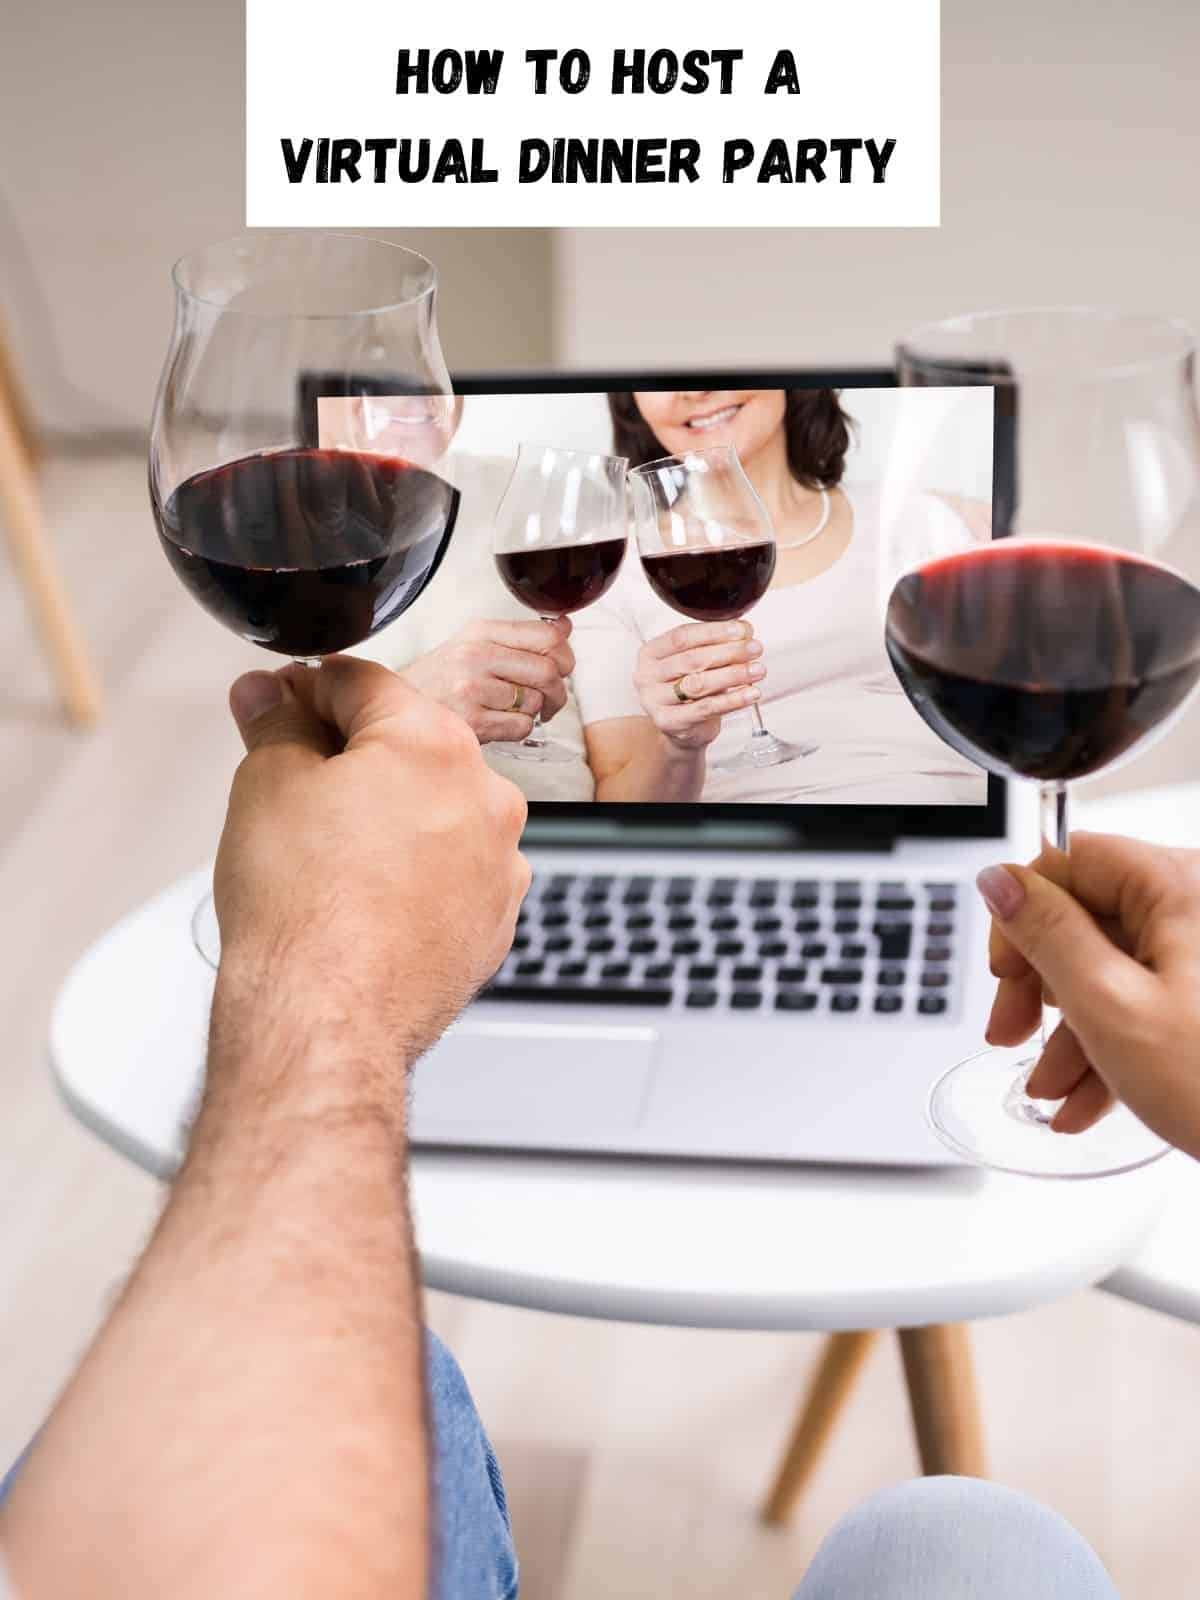 toasting wine on a virtual computer party with friends